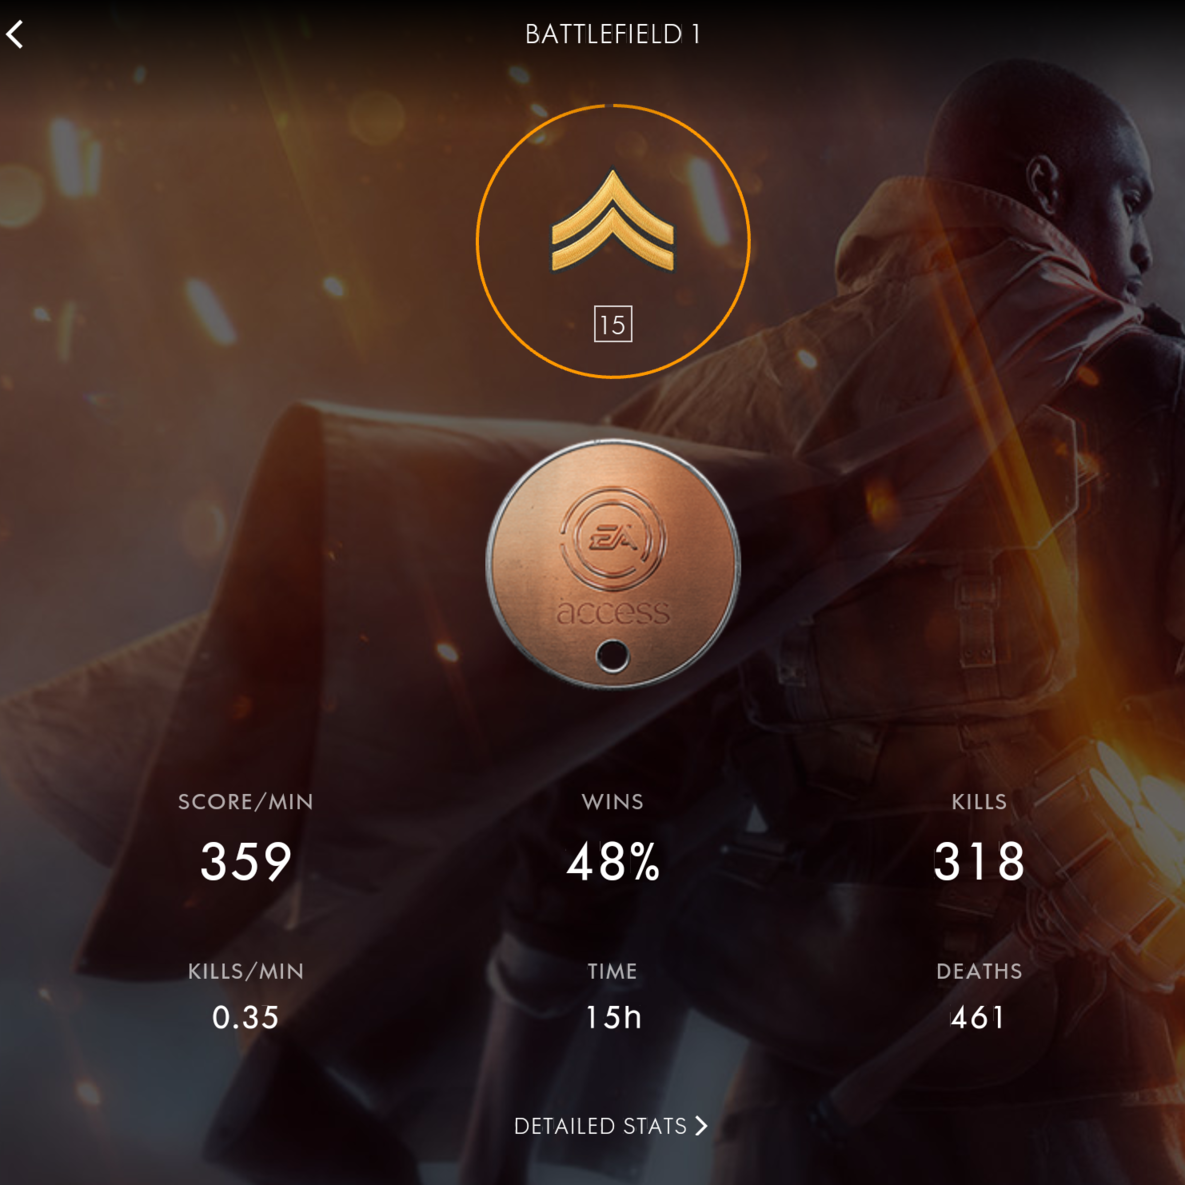 What's your score per minute? - Battlefield - Grim Reaper Gamers Forums